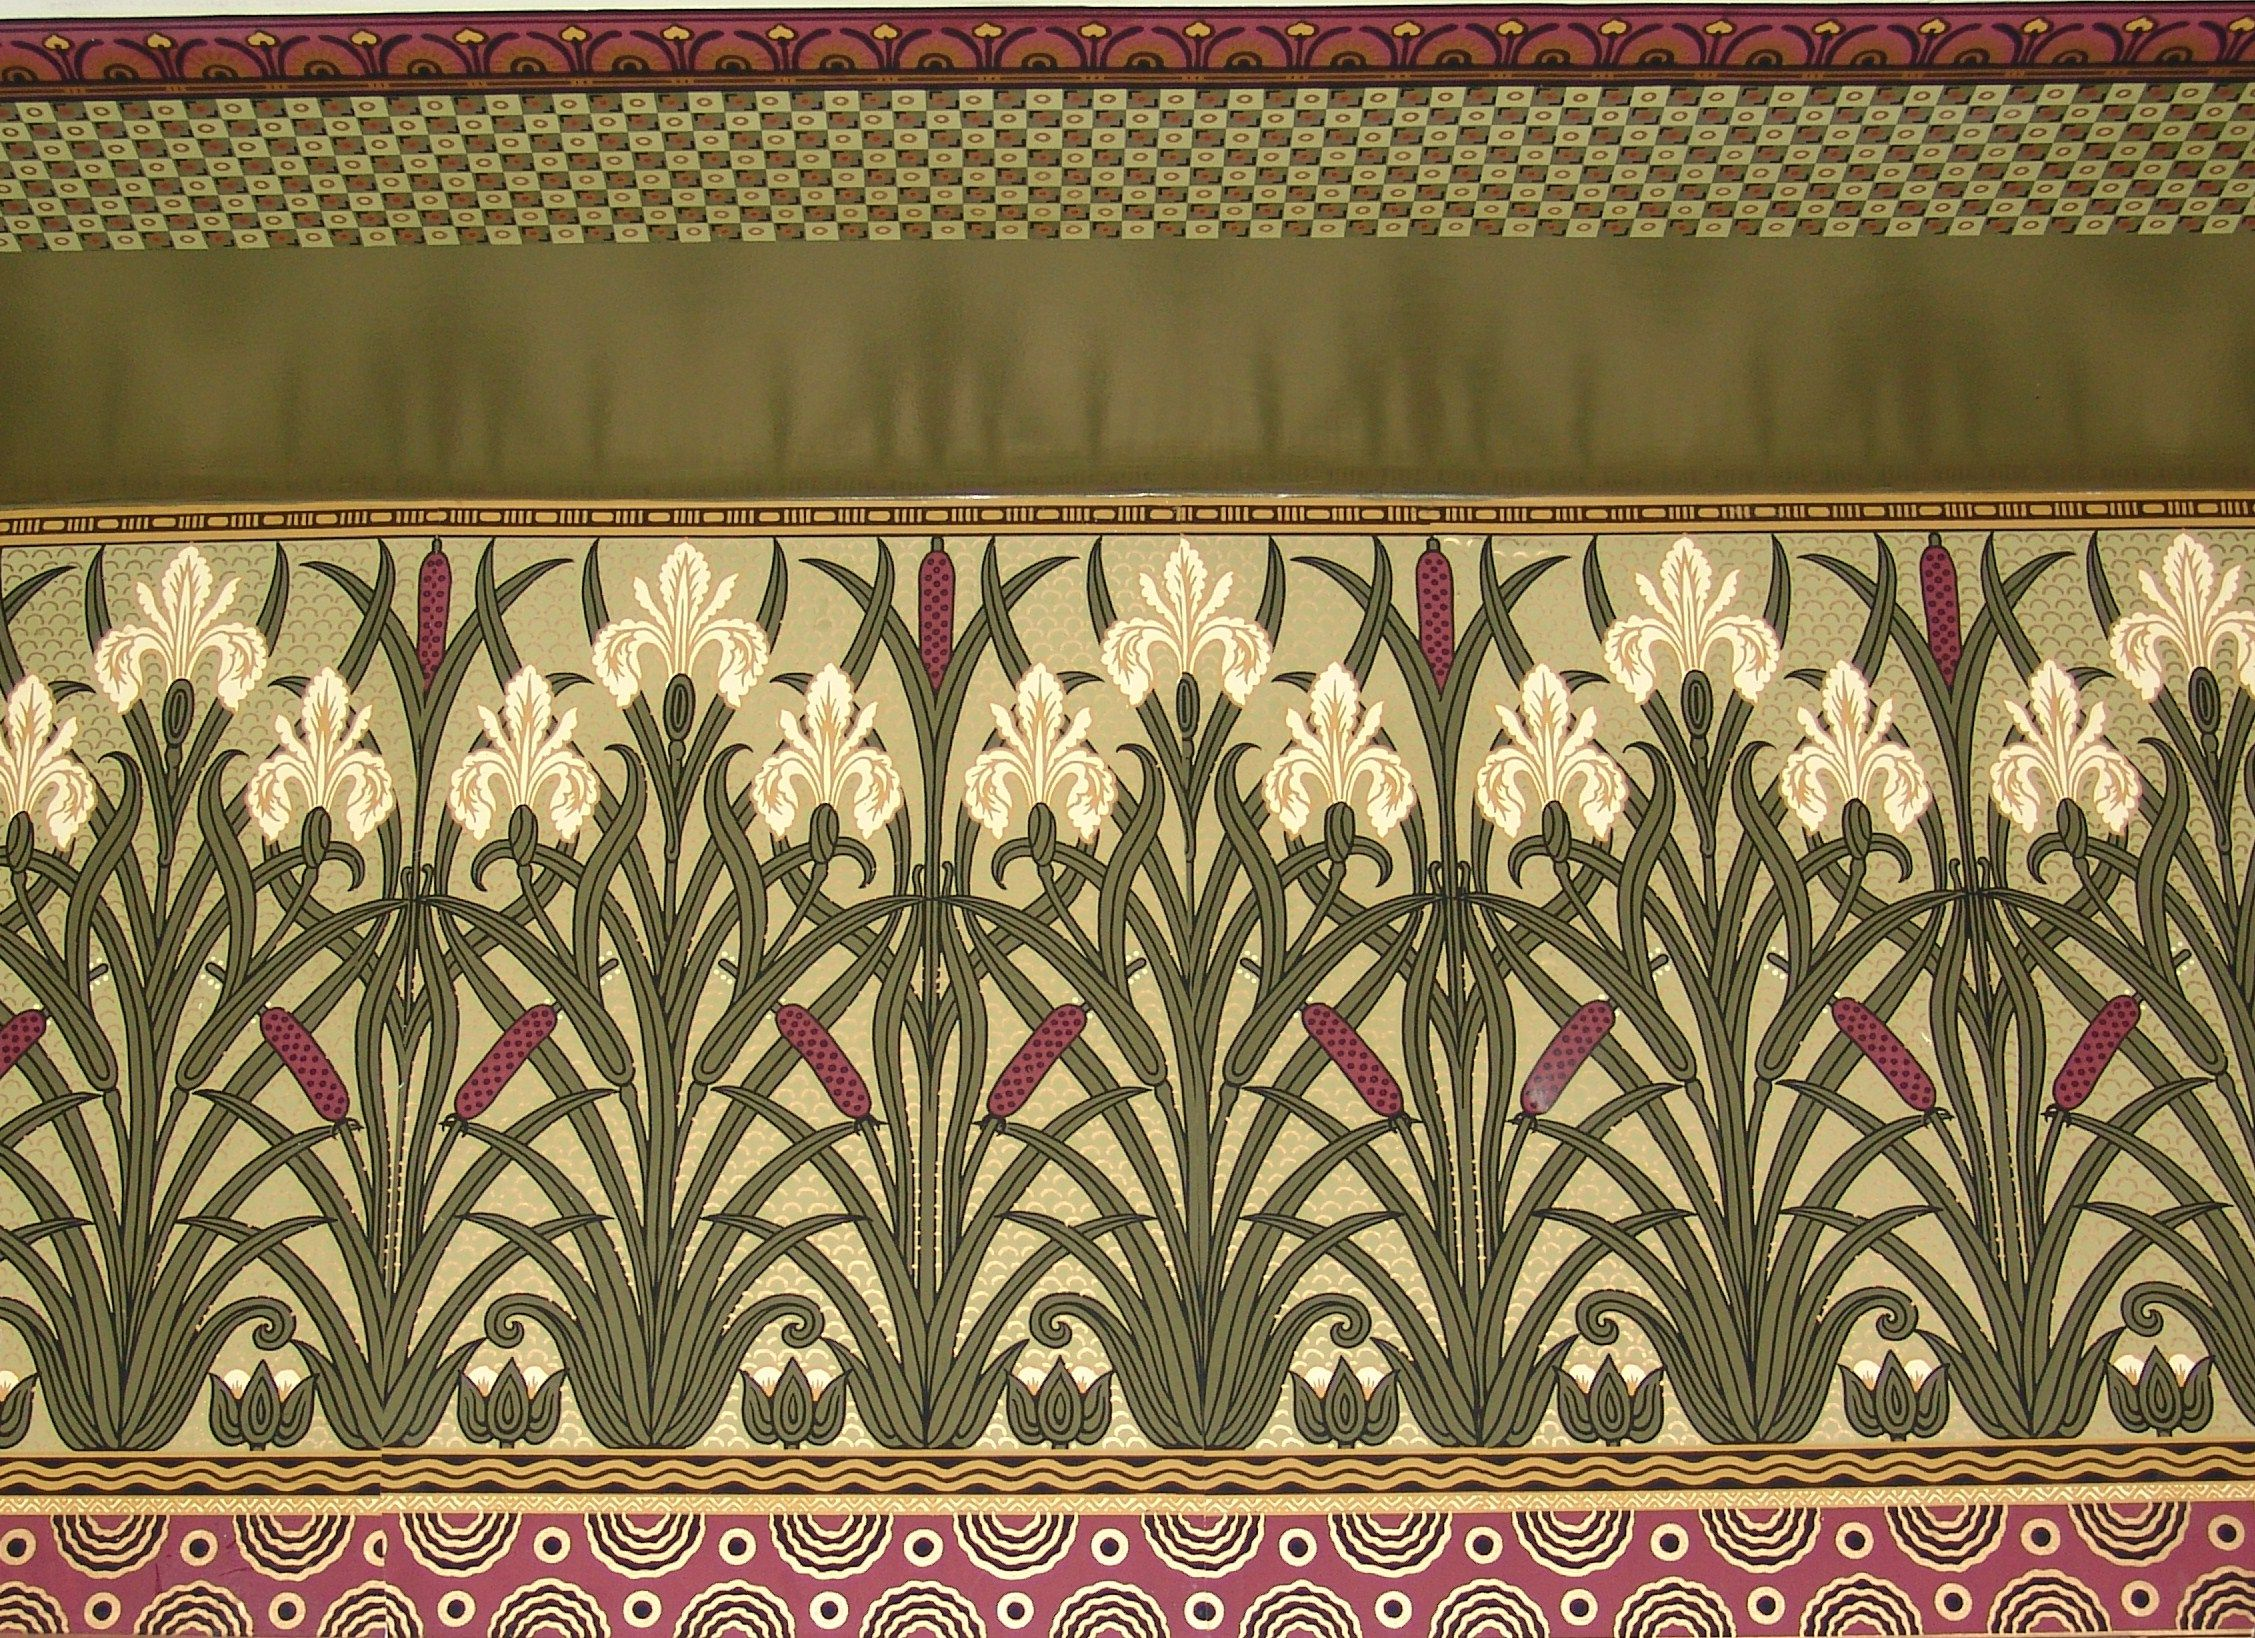 Arts and crafts movement design - Art And Crafts Movment Yahoo Image Search Results